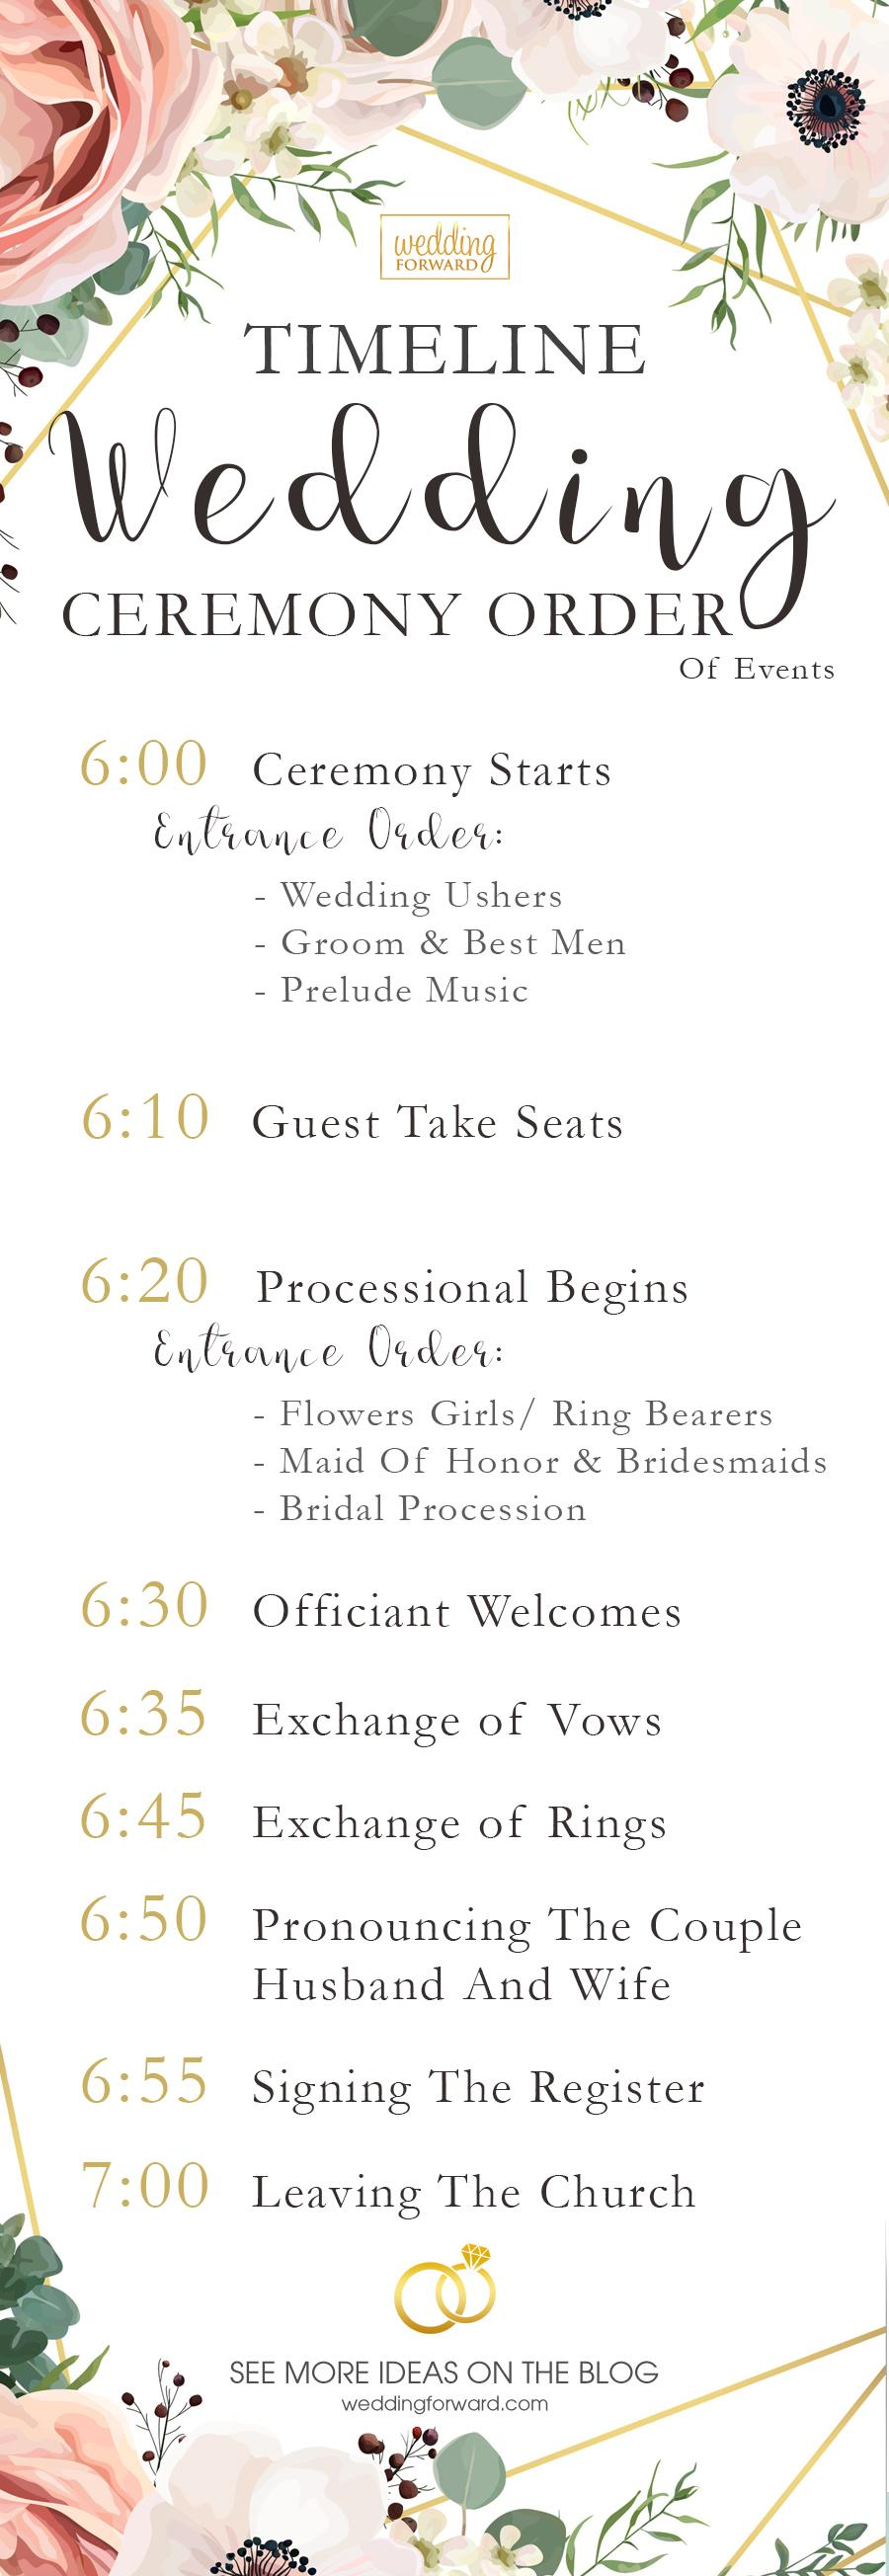 5 wedding ceremony order ideas  infographic